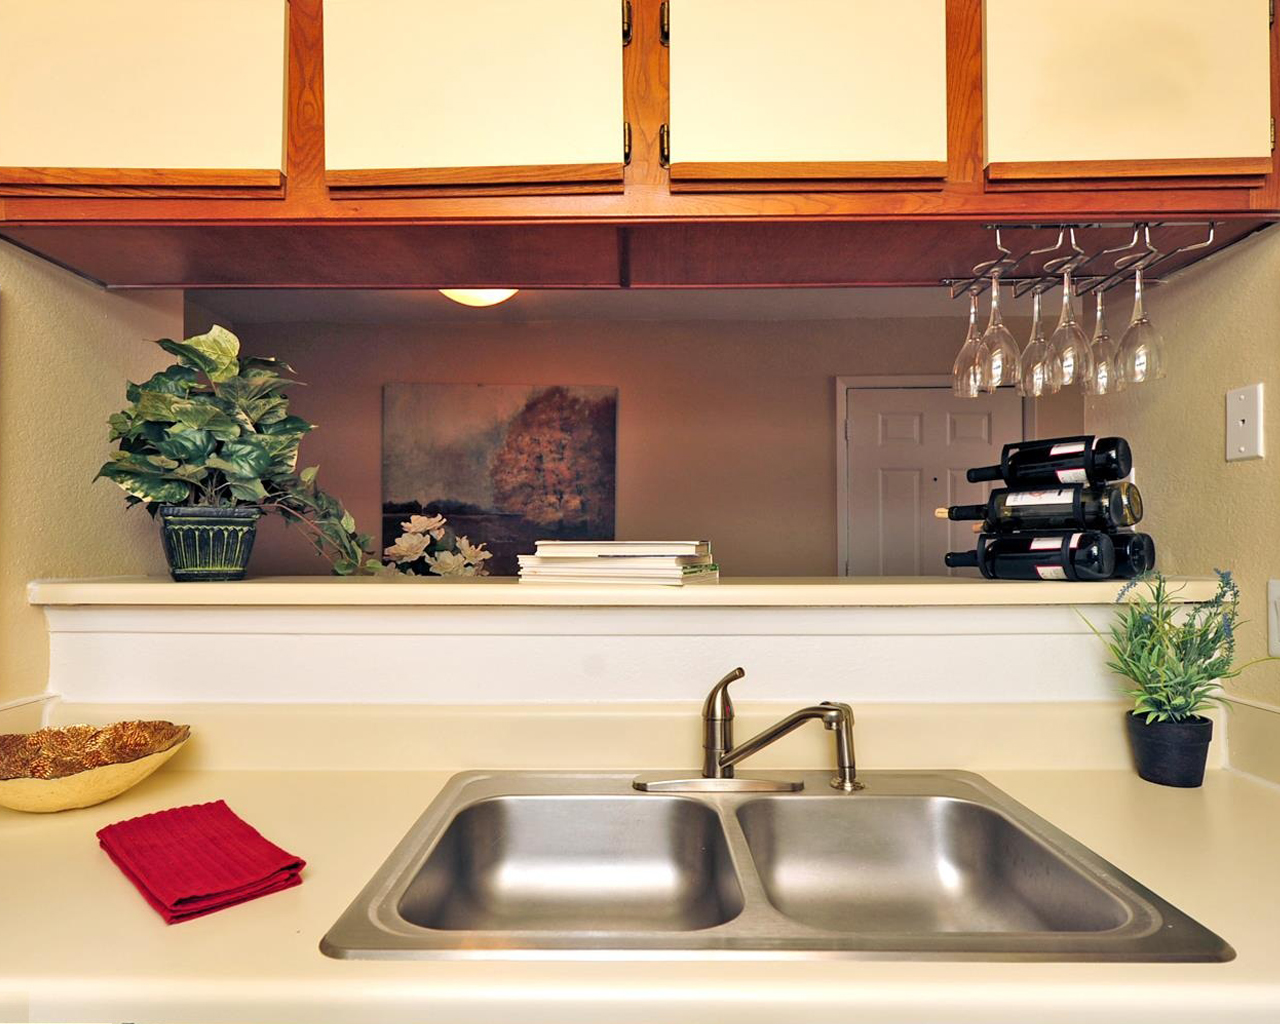 Forest Hills apartments fully equipped kitchen